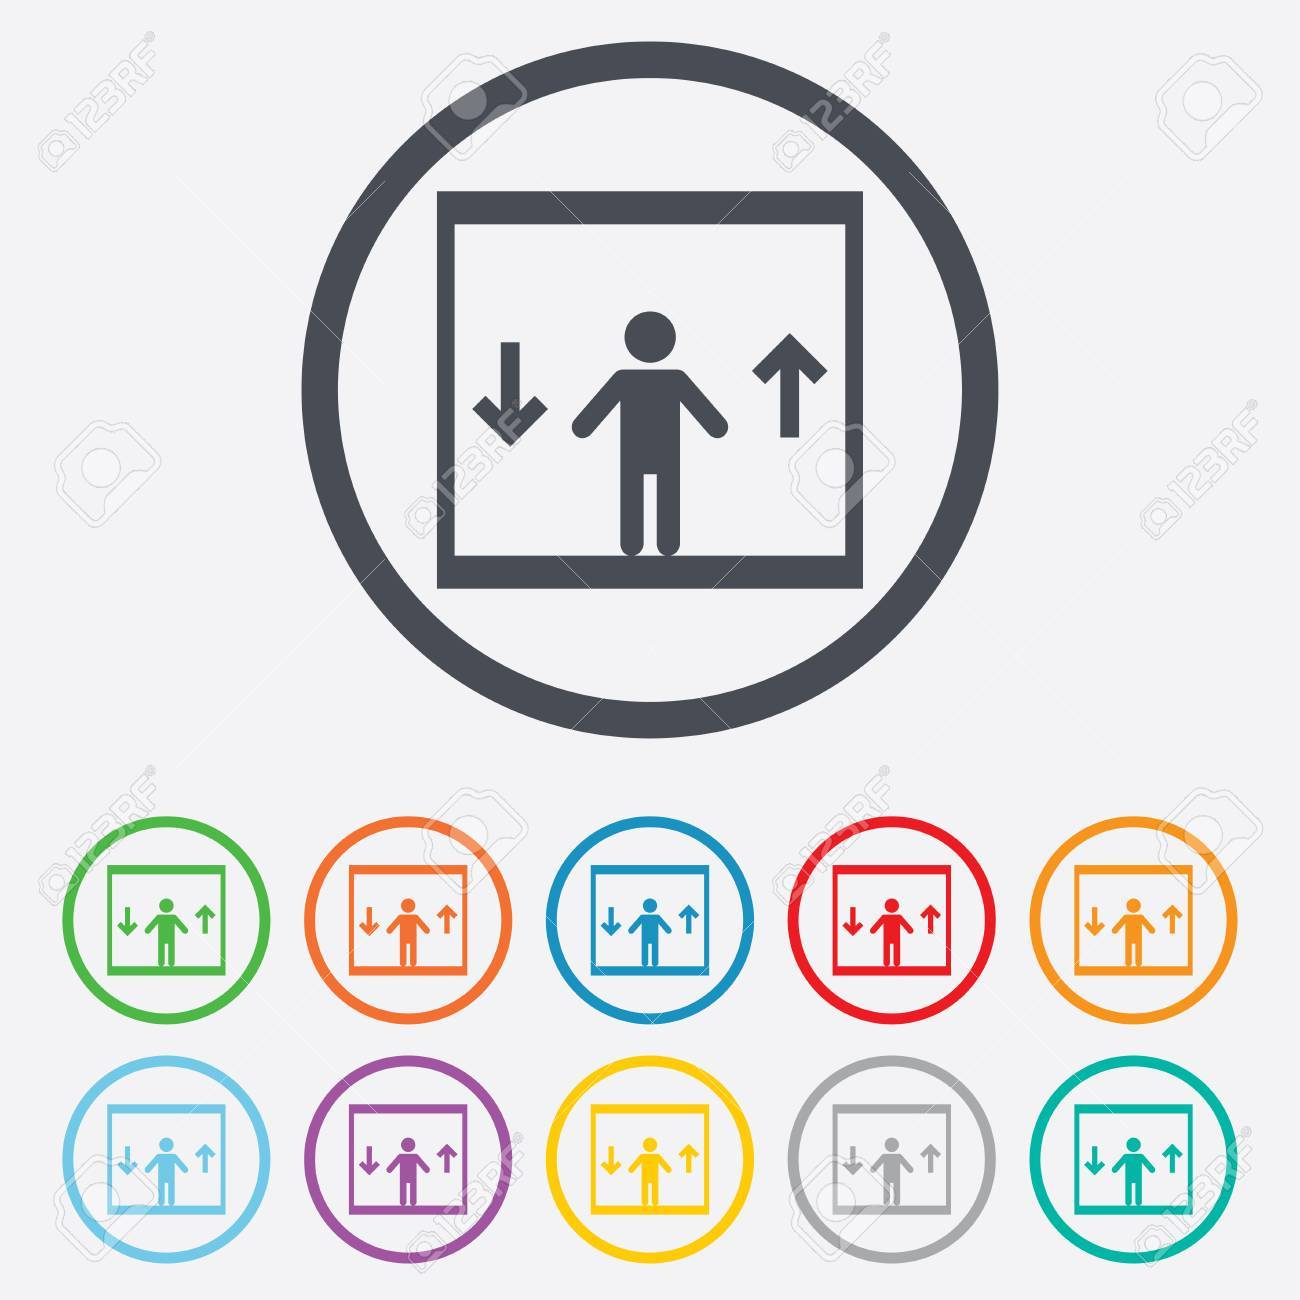 elevator sign icon person symbol with up and down arrows round rh 123rf com